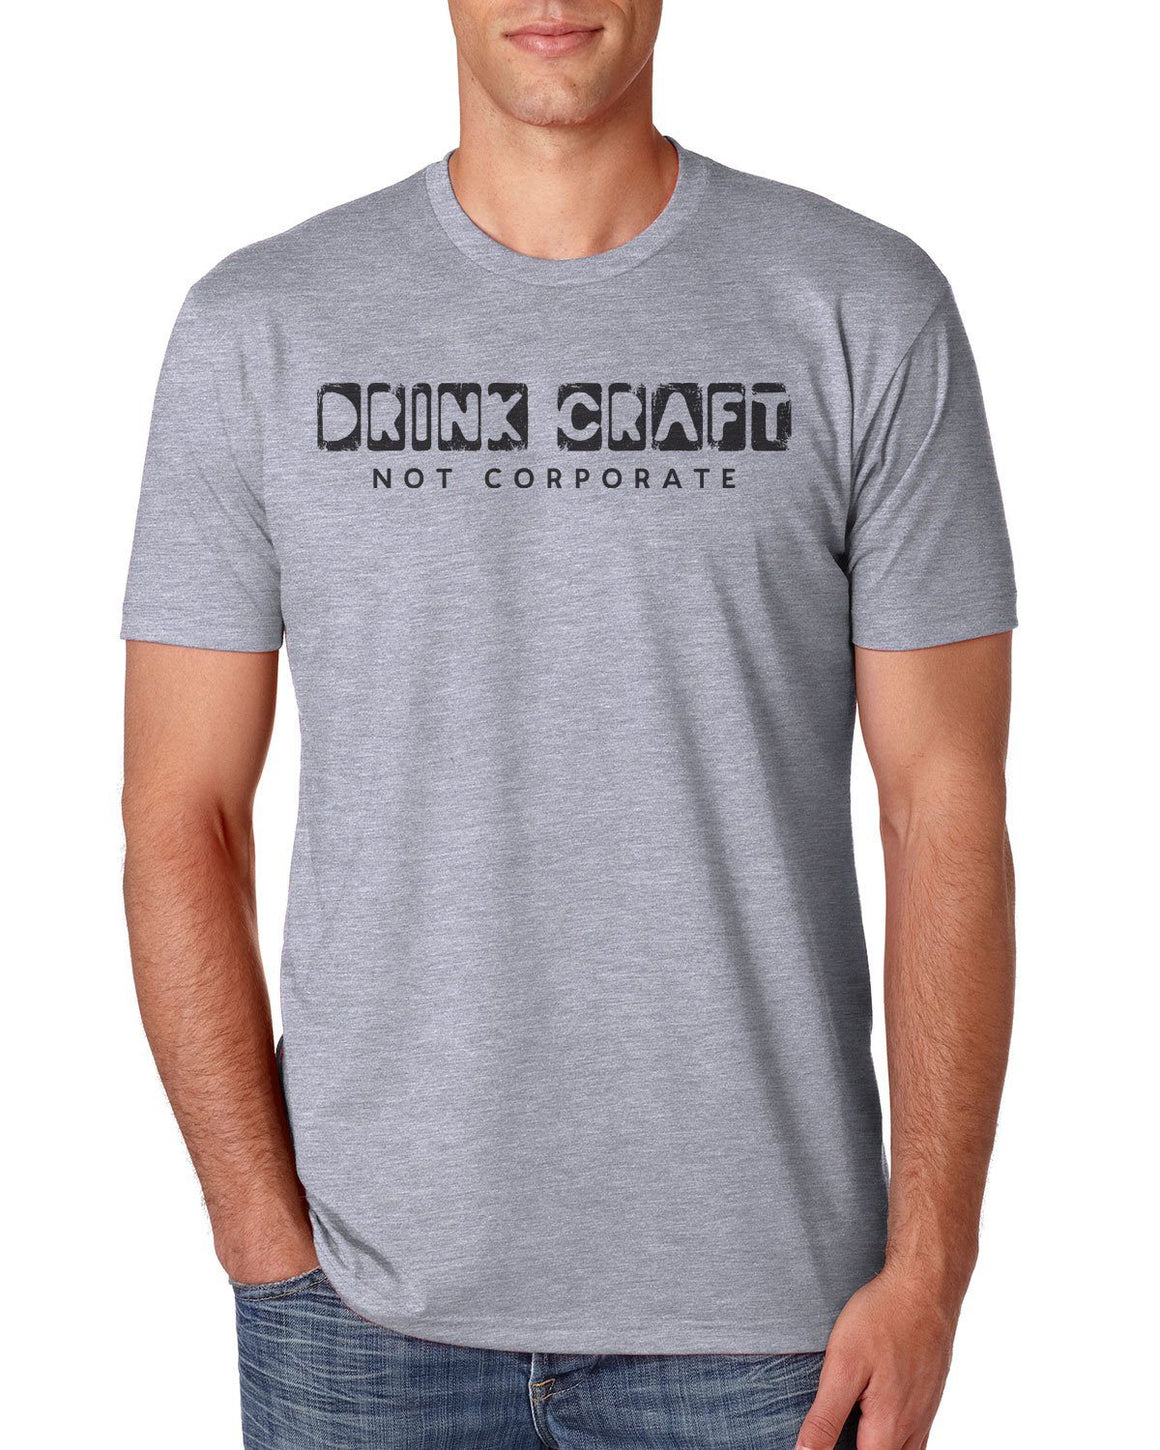 Drink Craft Not Corporate T-Shirt